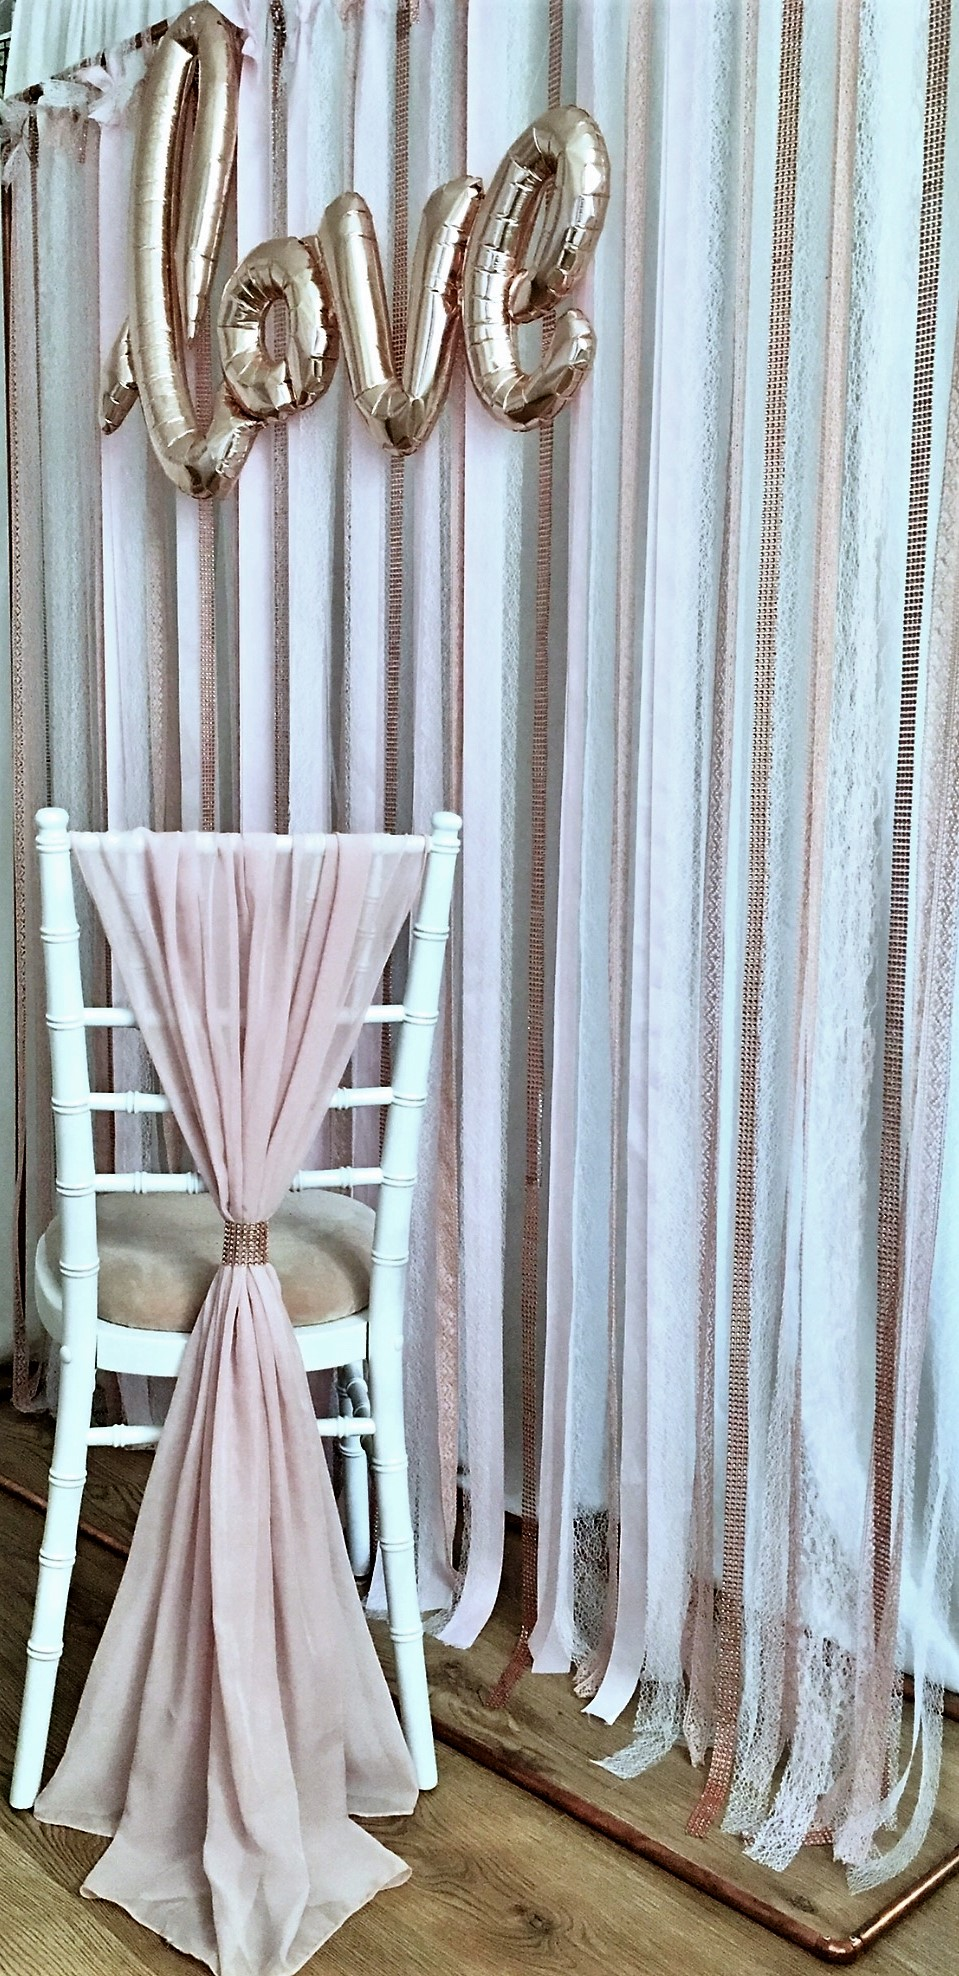 Chiffon chair drapes